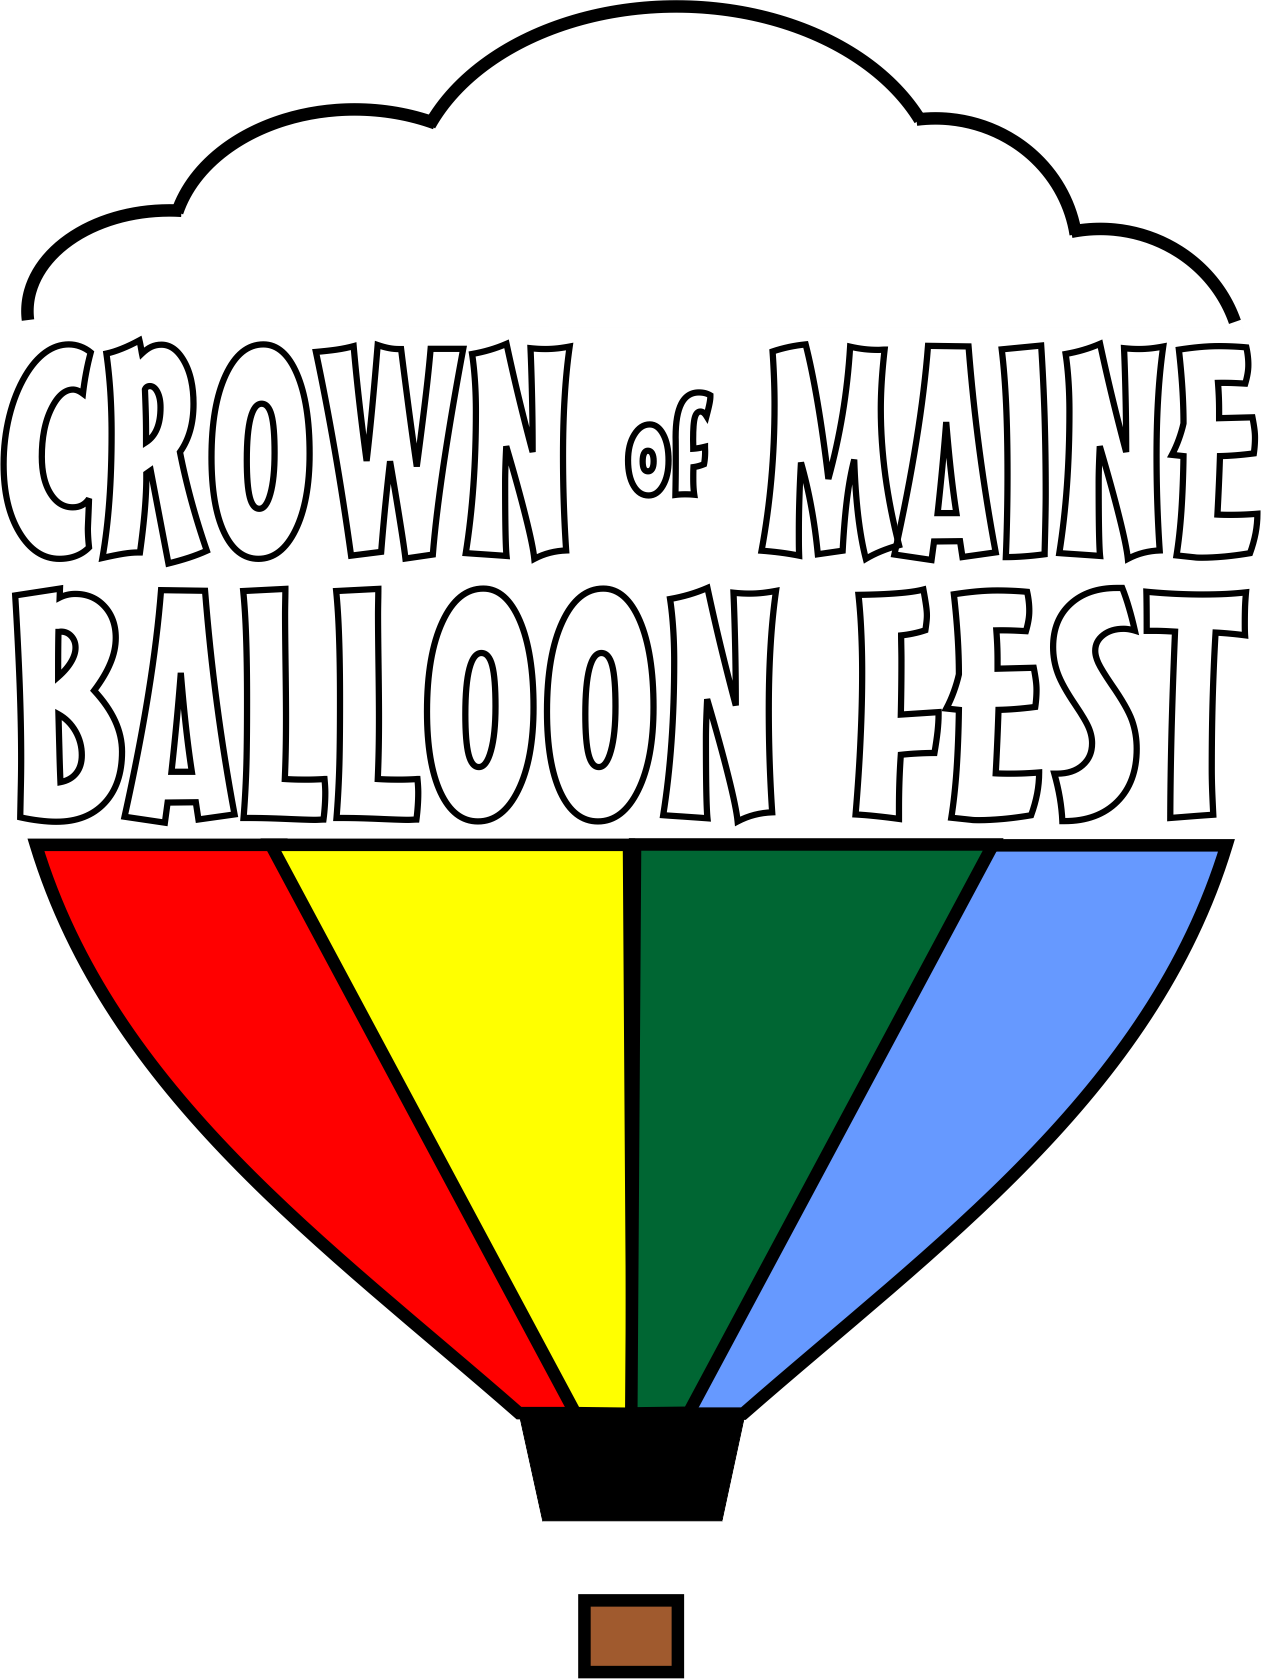 Crown of Maine Balloon Fest